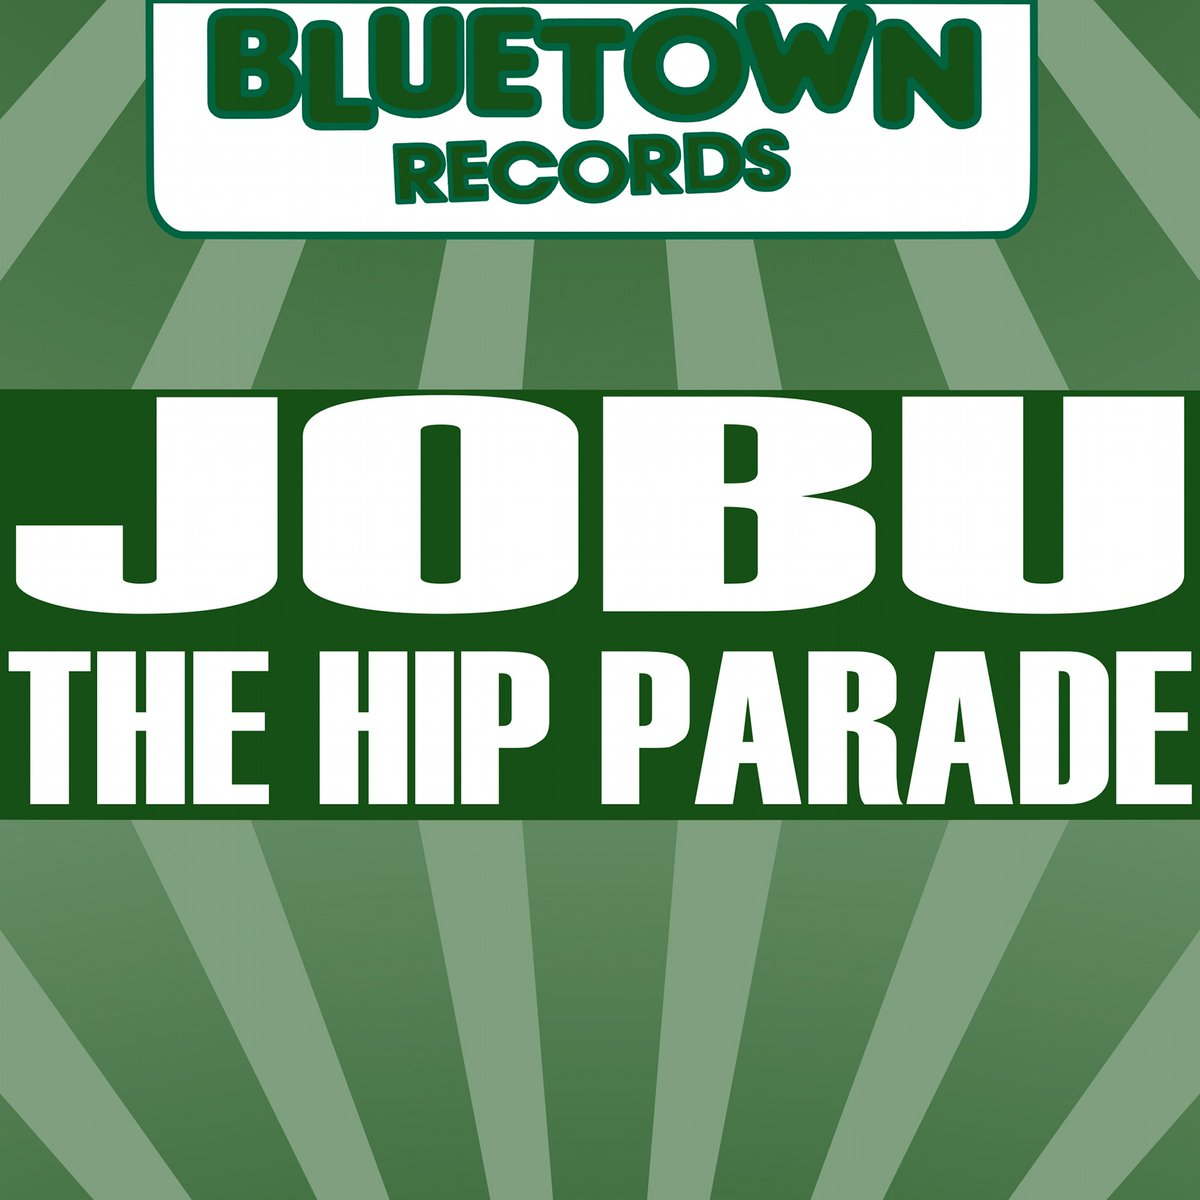 Out now! JoBu &quot;The Hip Parade&quot;  http://www. traxsource.com/title/584093/t he-hip-parade &nbsp; …  #housemusic #realhousemusic <br>http://pic.twitter.com/9uDzd7N5f1